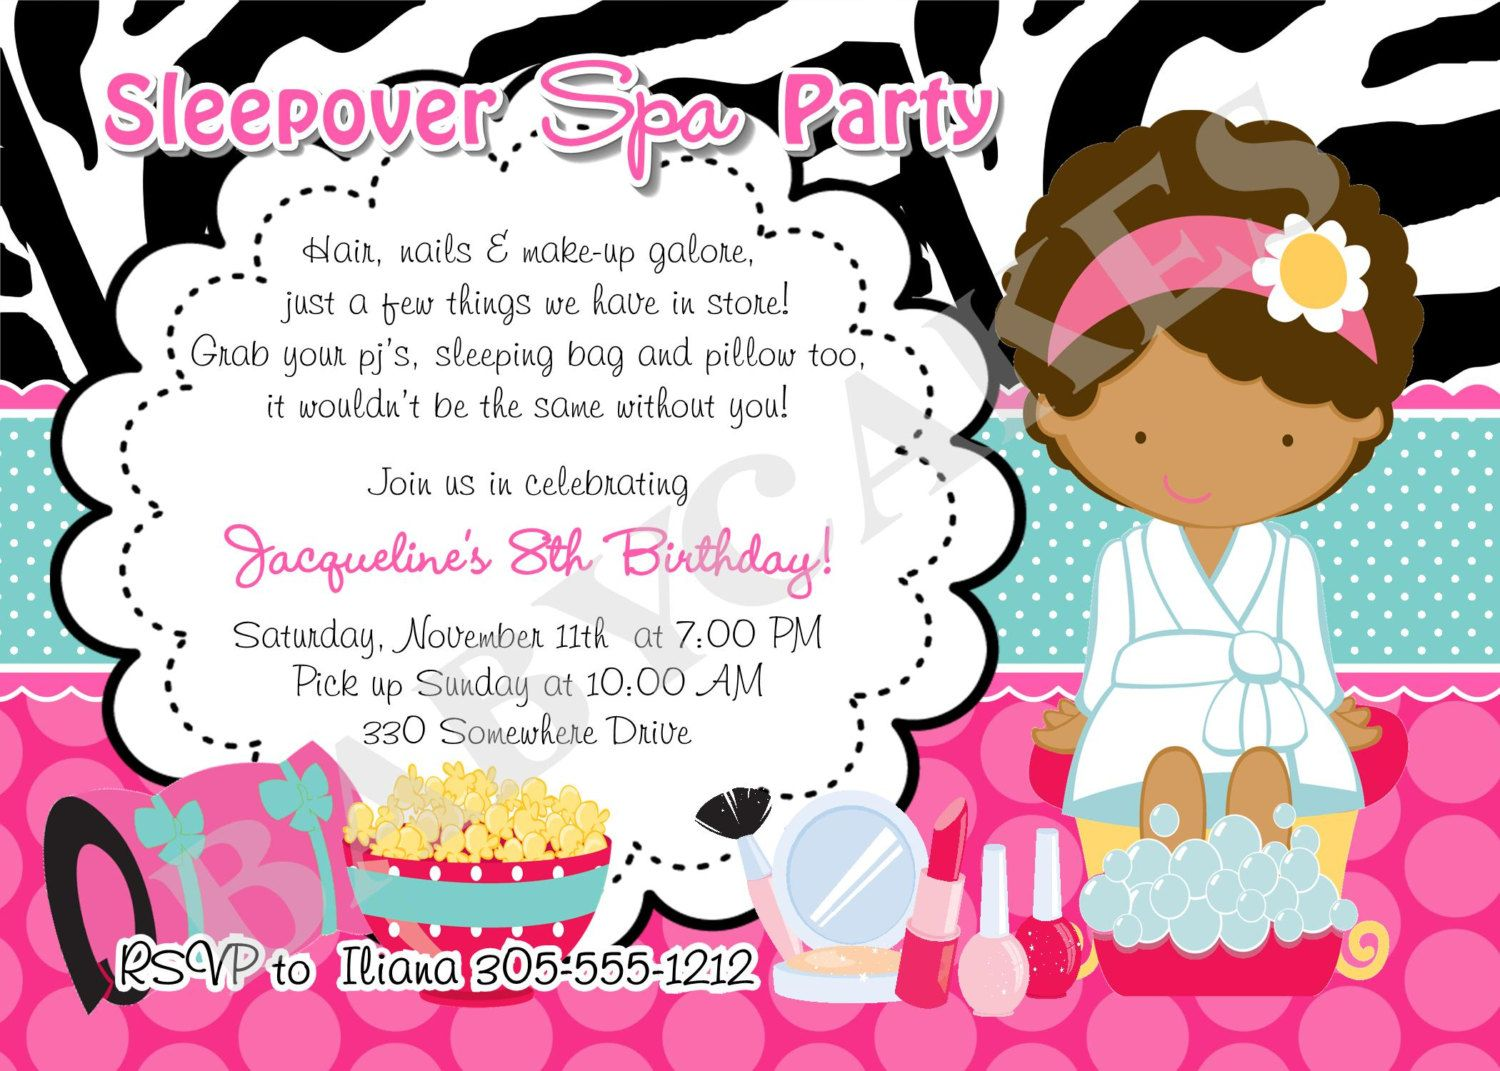 Spa Slumber Party Invitations Free Printable | Birthday party ...